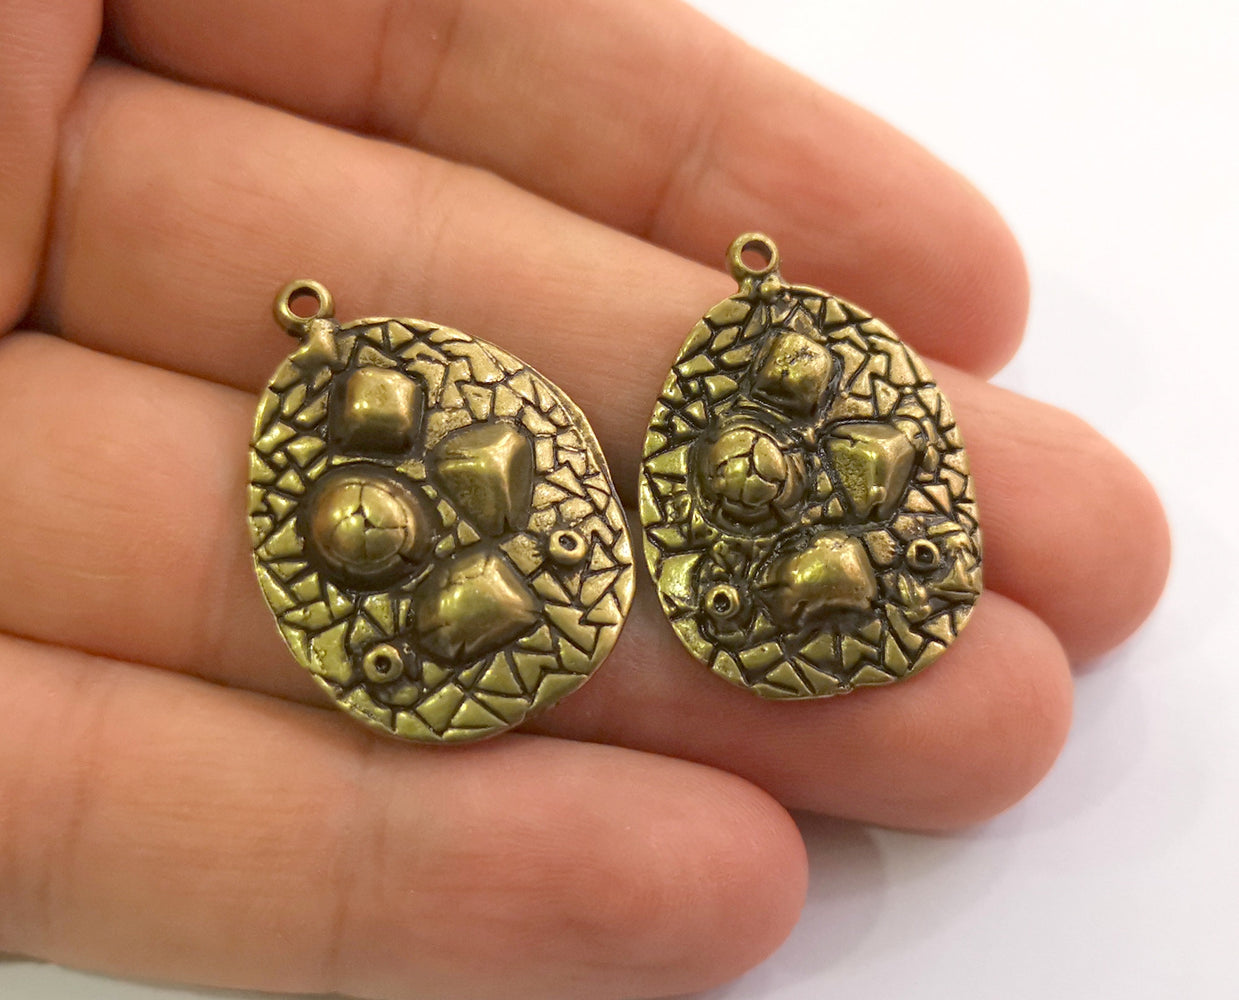 2 Antique Bronze Charms Antique Bronze Plated Charms (30x22mm)  G18606